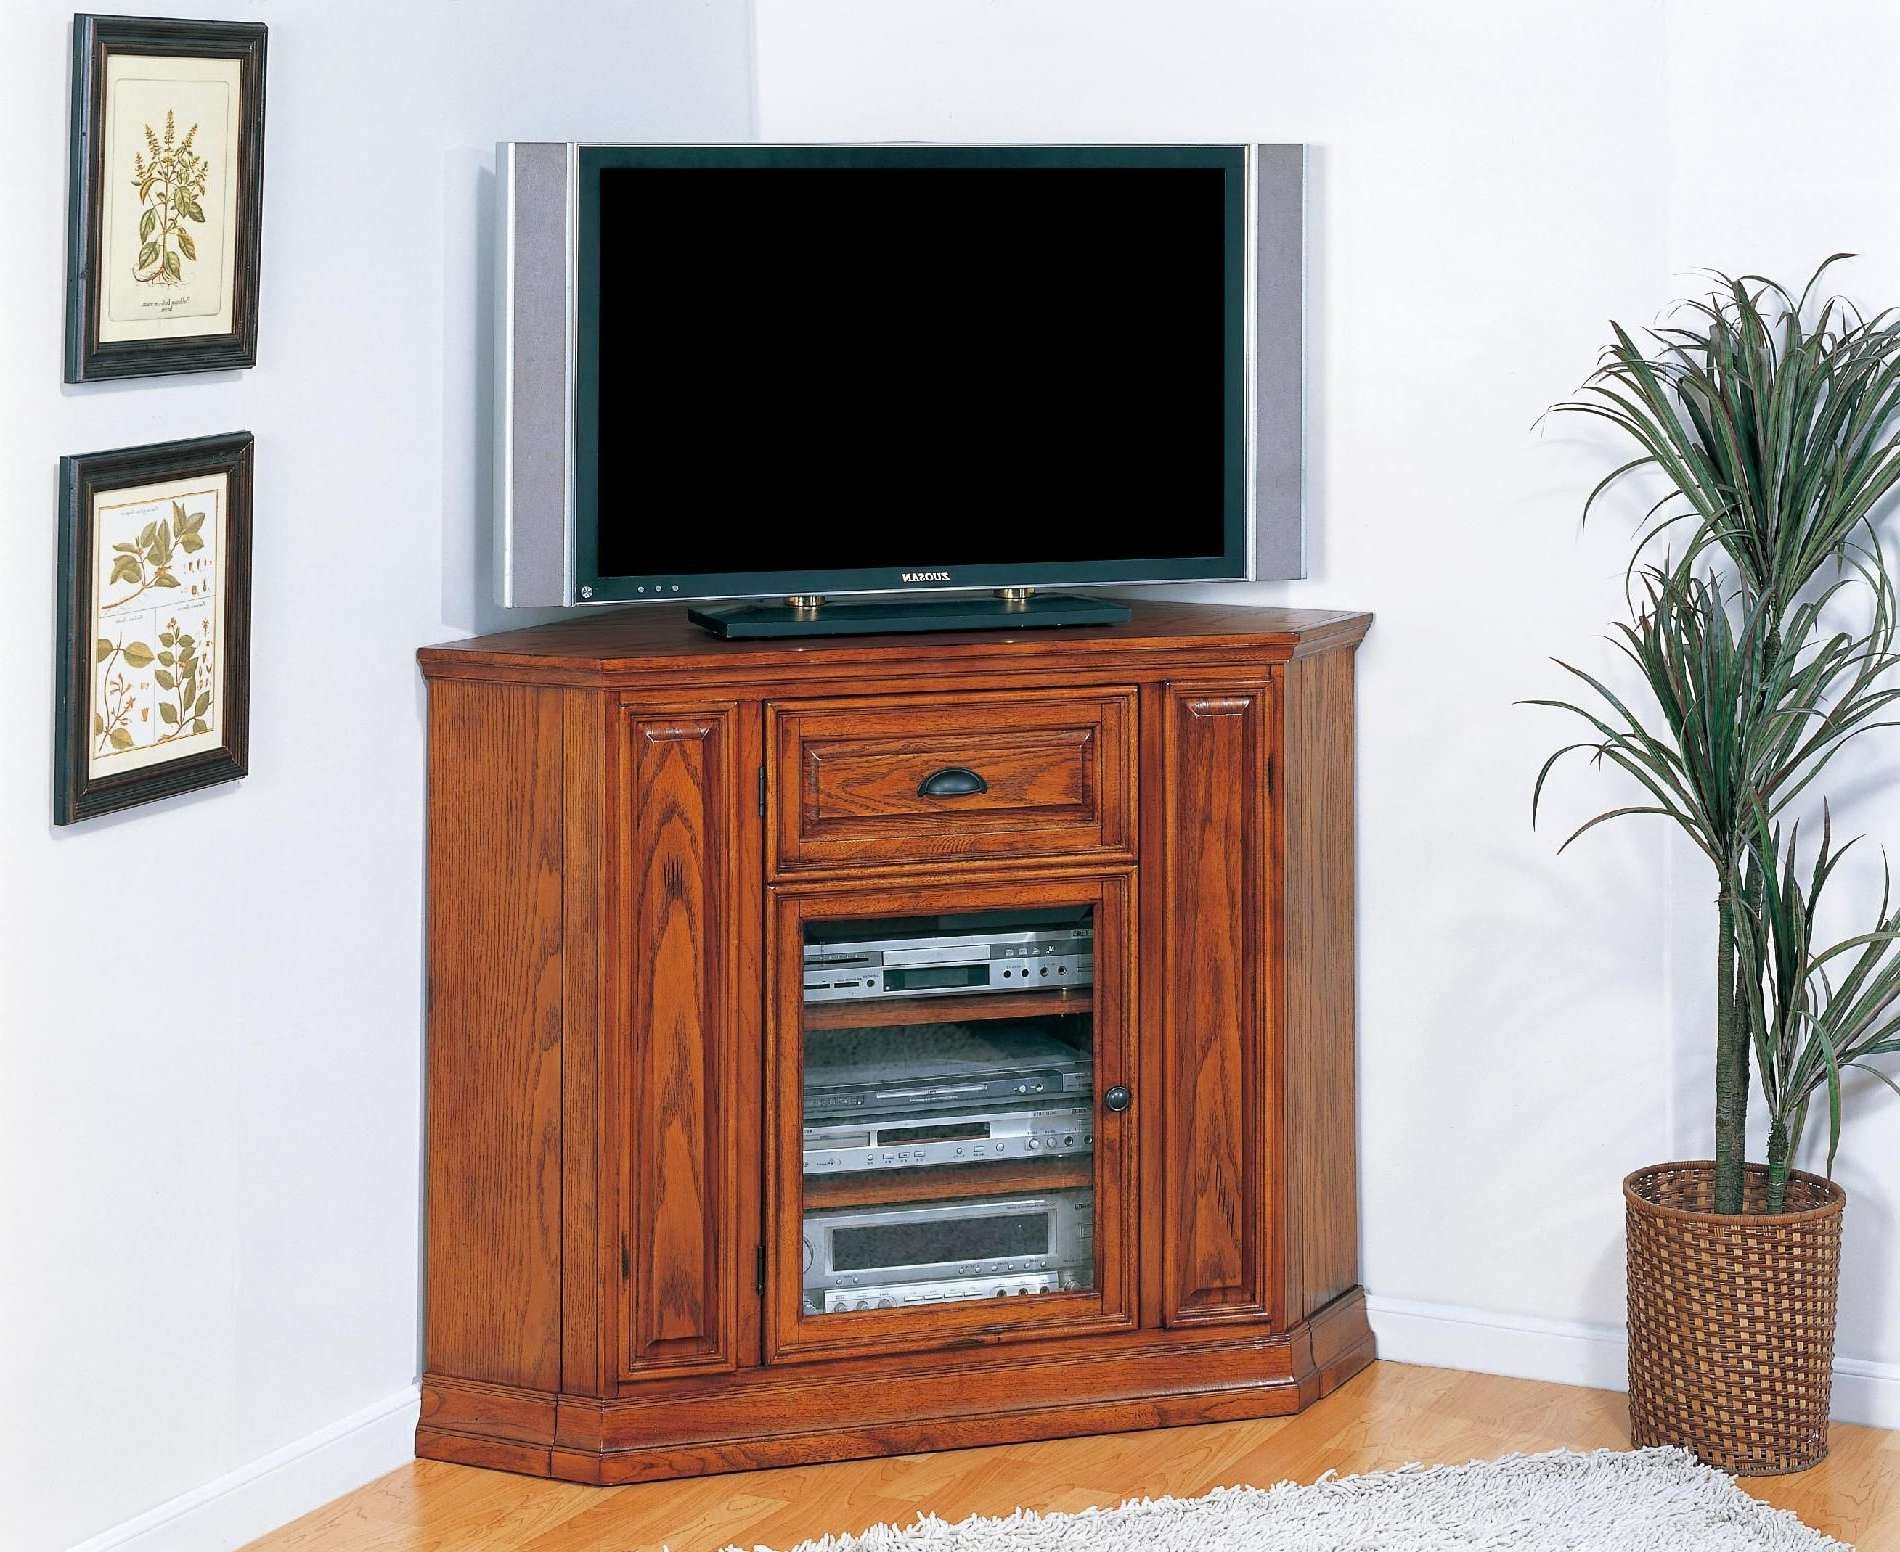 Tall Corner Tv Cabinets For Flat Screens • Corner Cabinets For Corner Tv Cabinets For Flat Screen (View 13 of 20)